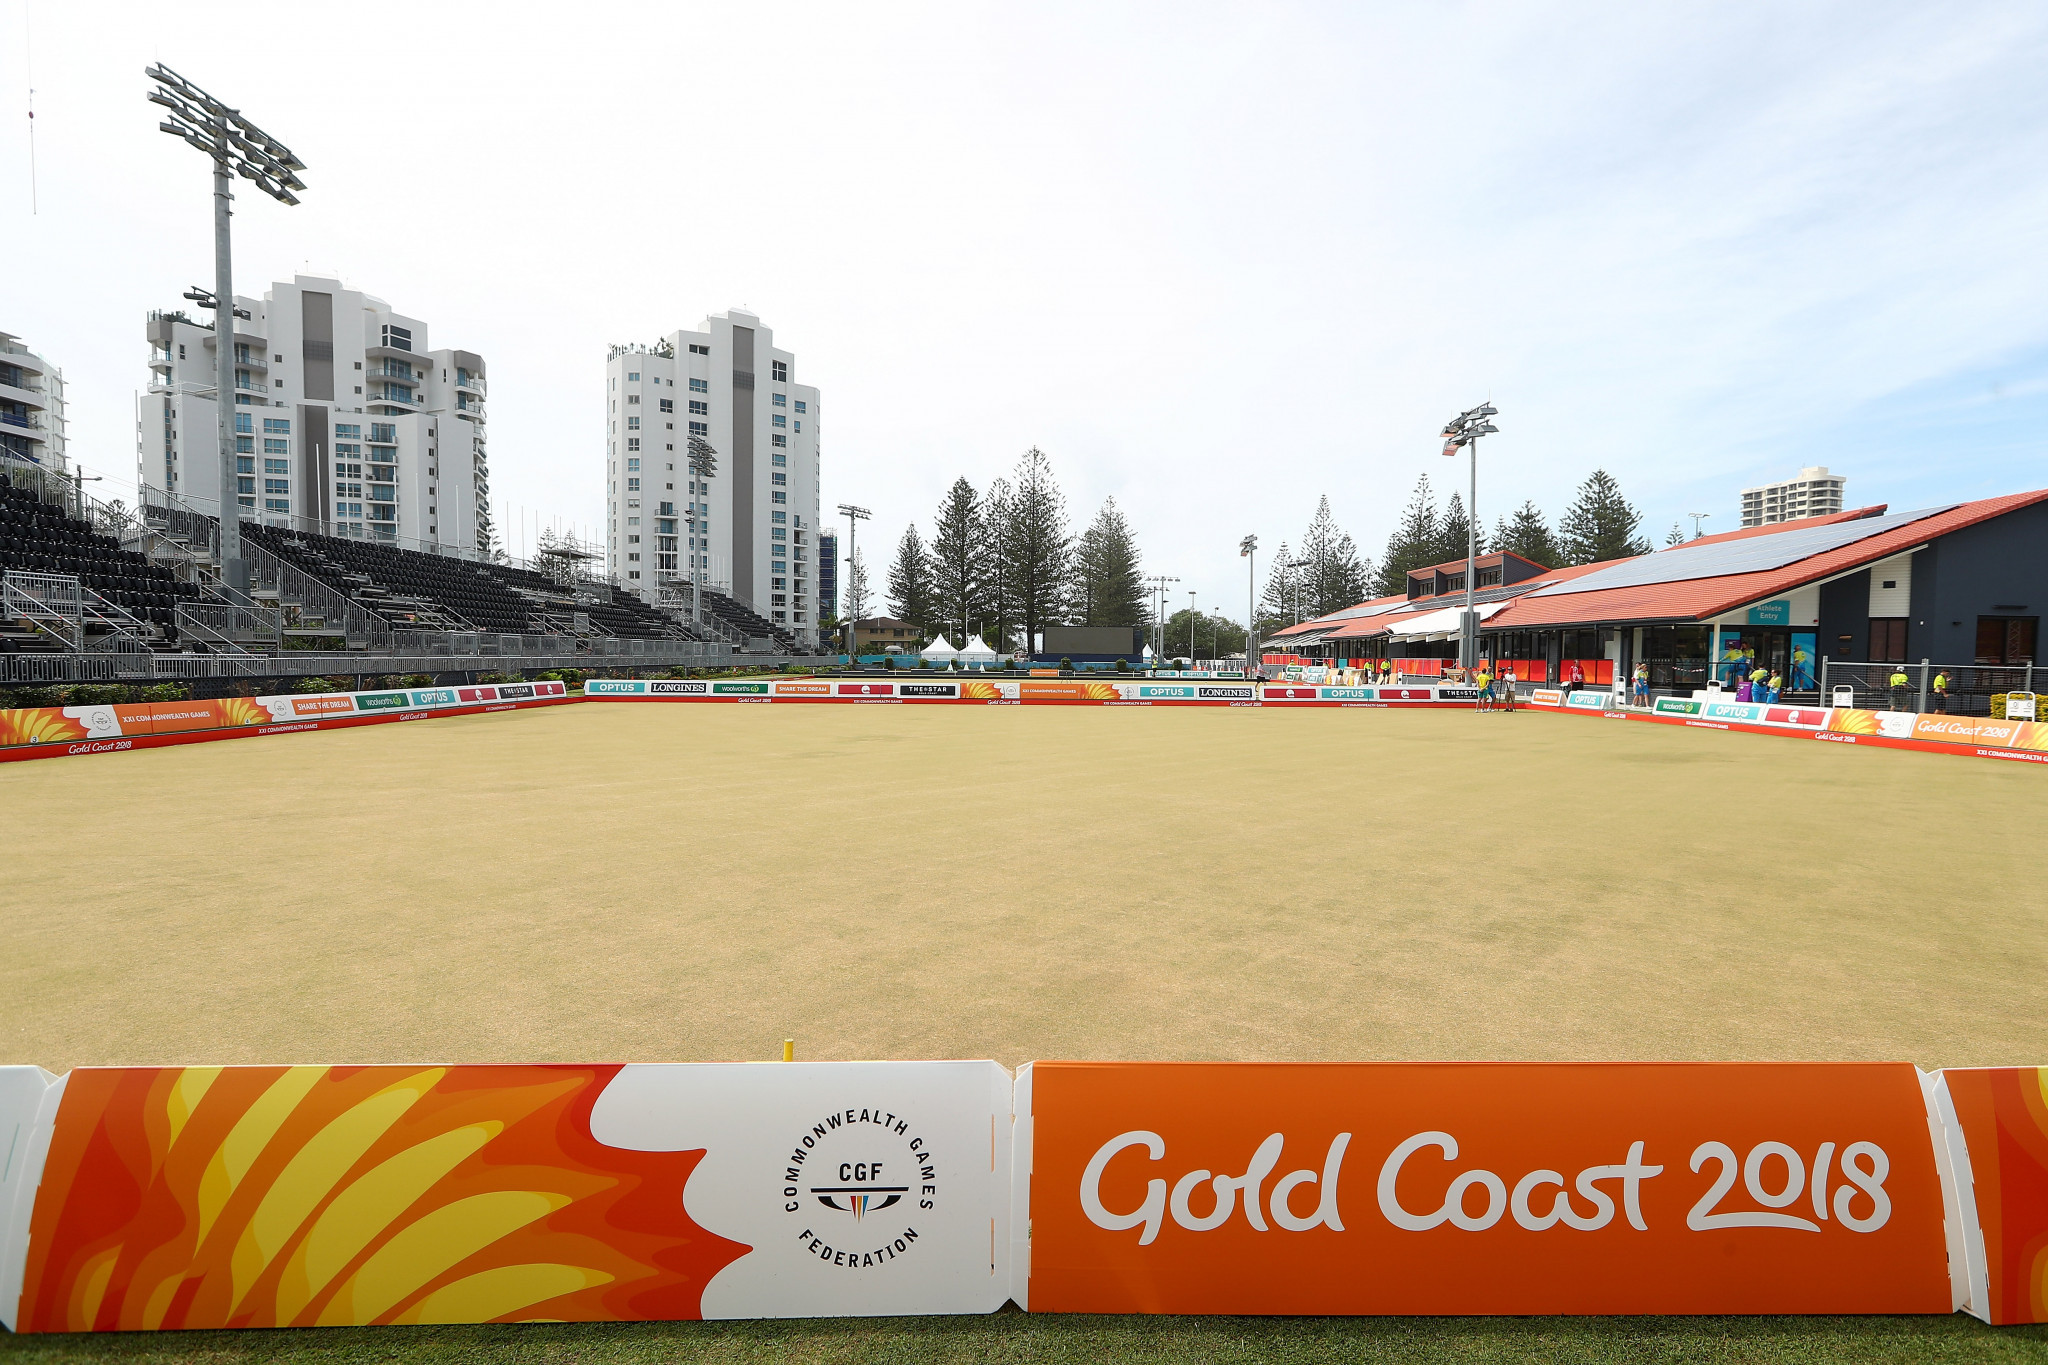 Gold Coast 2018 promise entertainment for spectators watching lawn bowls events at Commonwealth Games